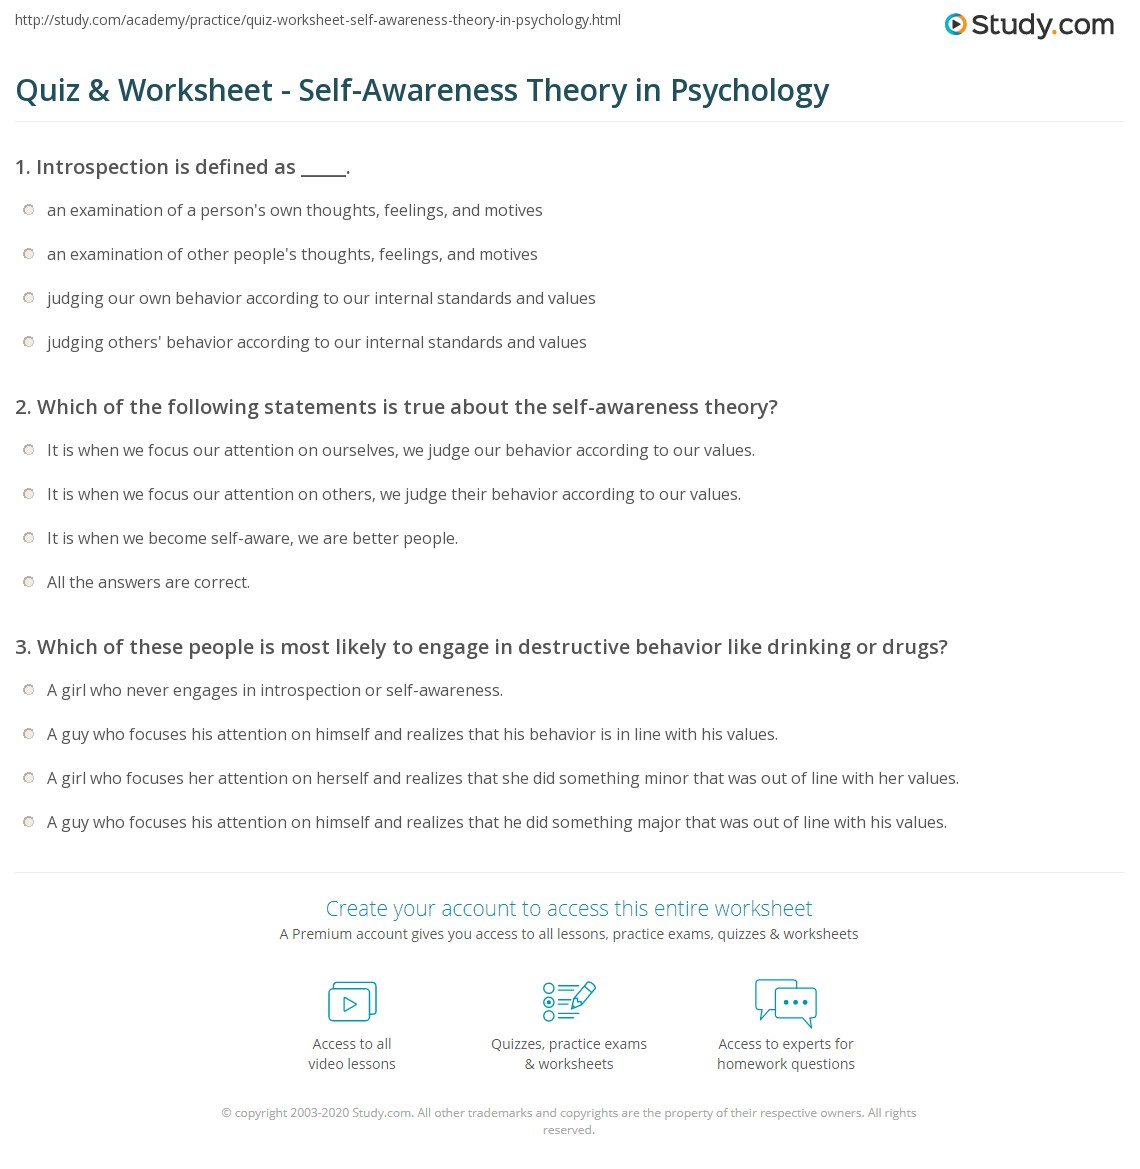 Worksheets Self Awareness Worksheets quiz worksheet self awareness theory in psychology study com print introspection and definition examples worksheet